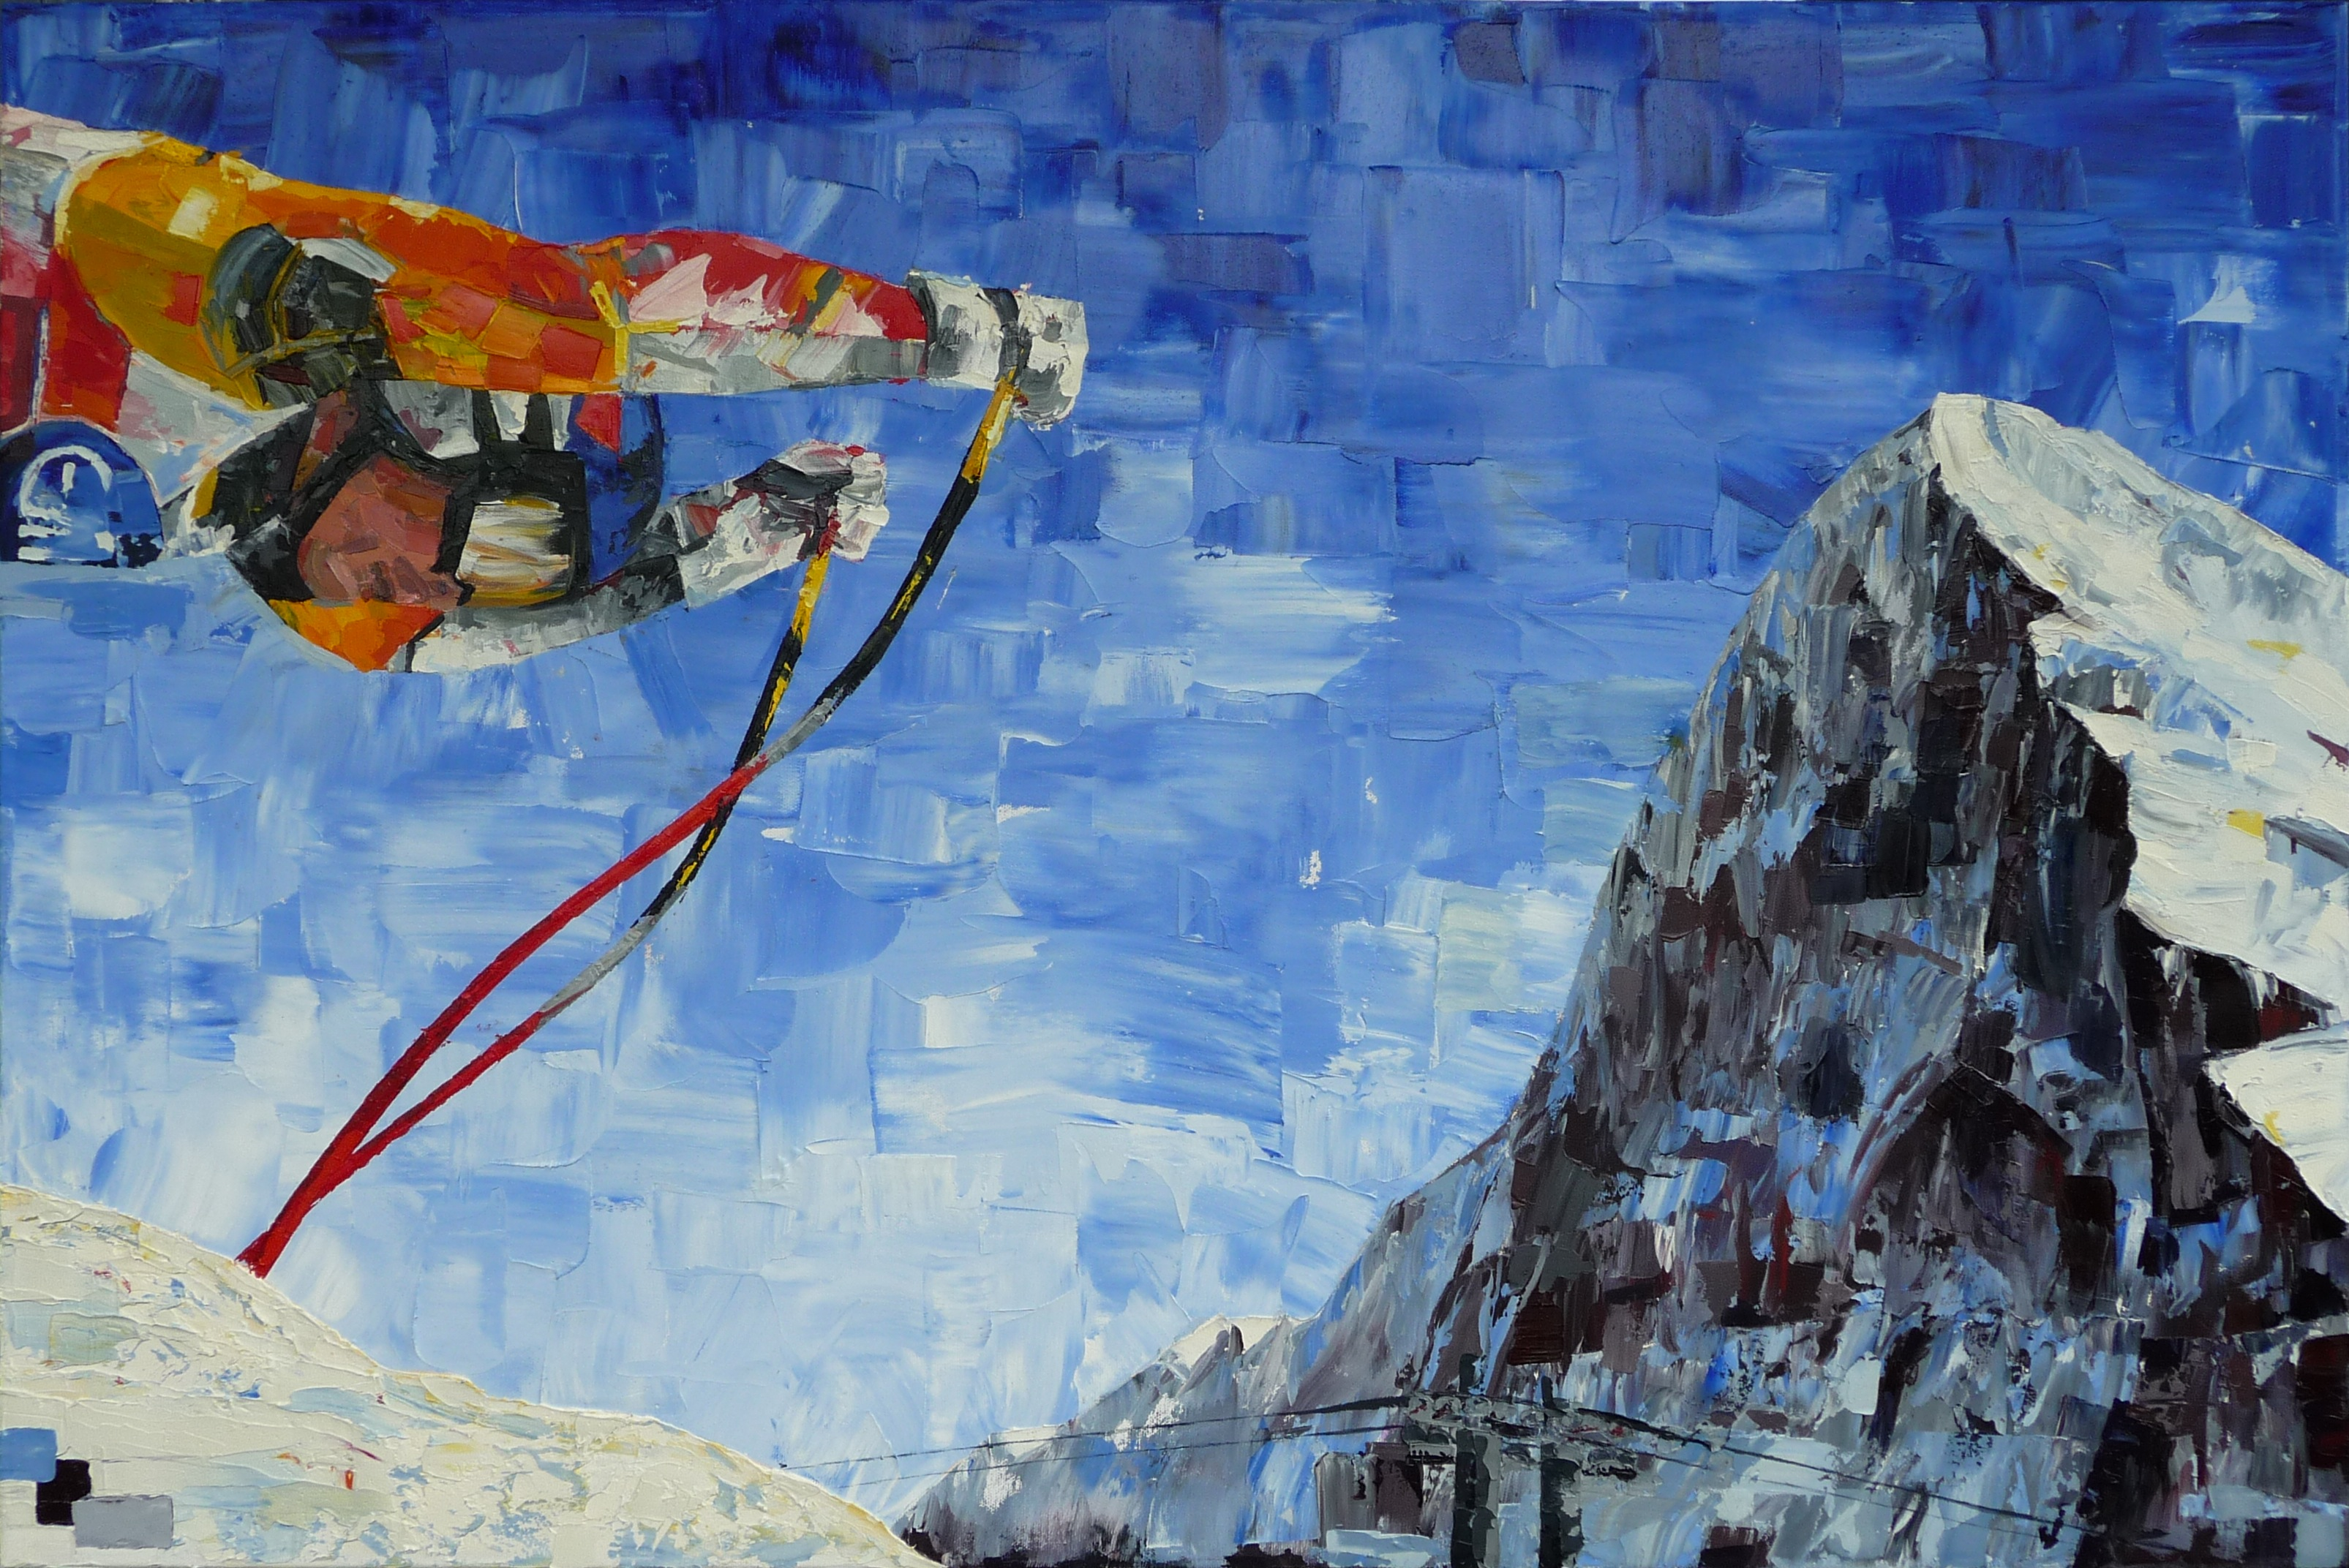 Eiger - 24X36 Oil on Canvas - Biggs 2013